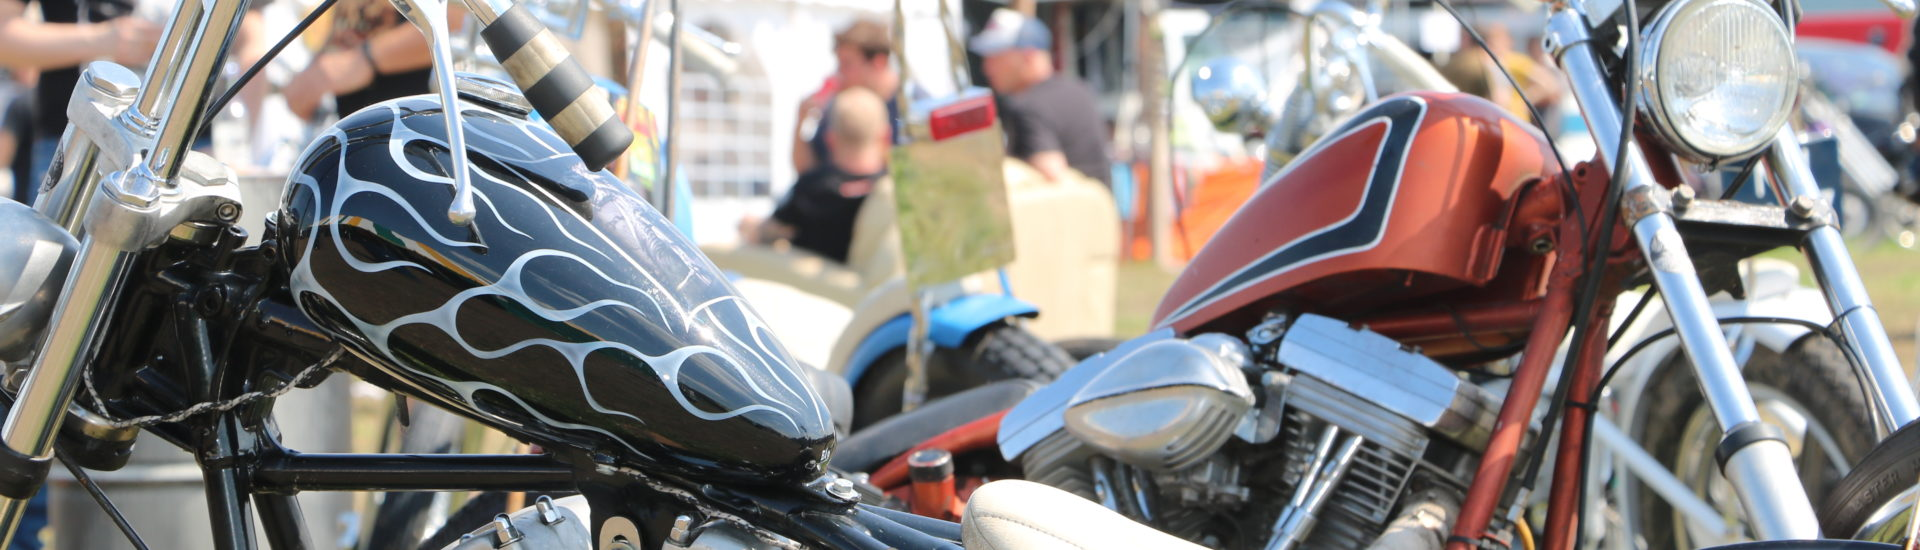 The Online Webshop For Chopper And Bobber Parts Based In Dyna Coils Wiring Schematic Flanders Bash 2018